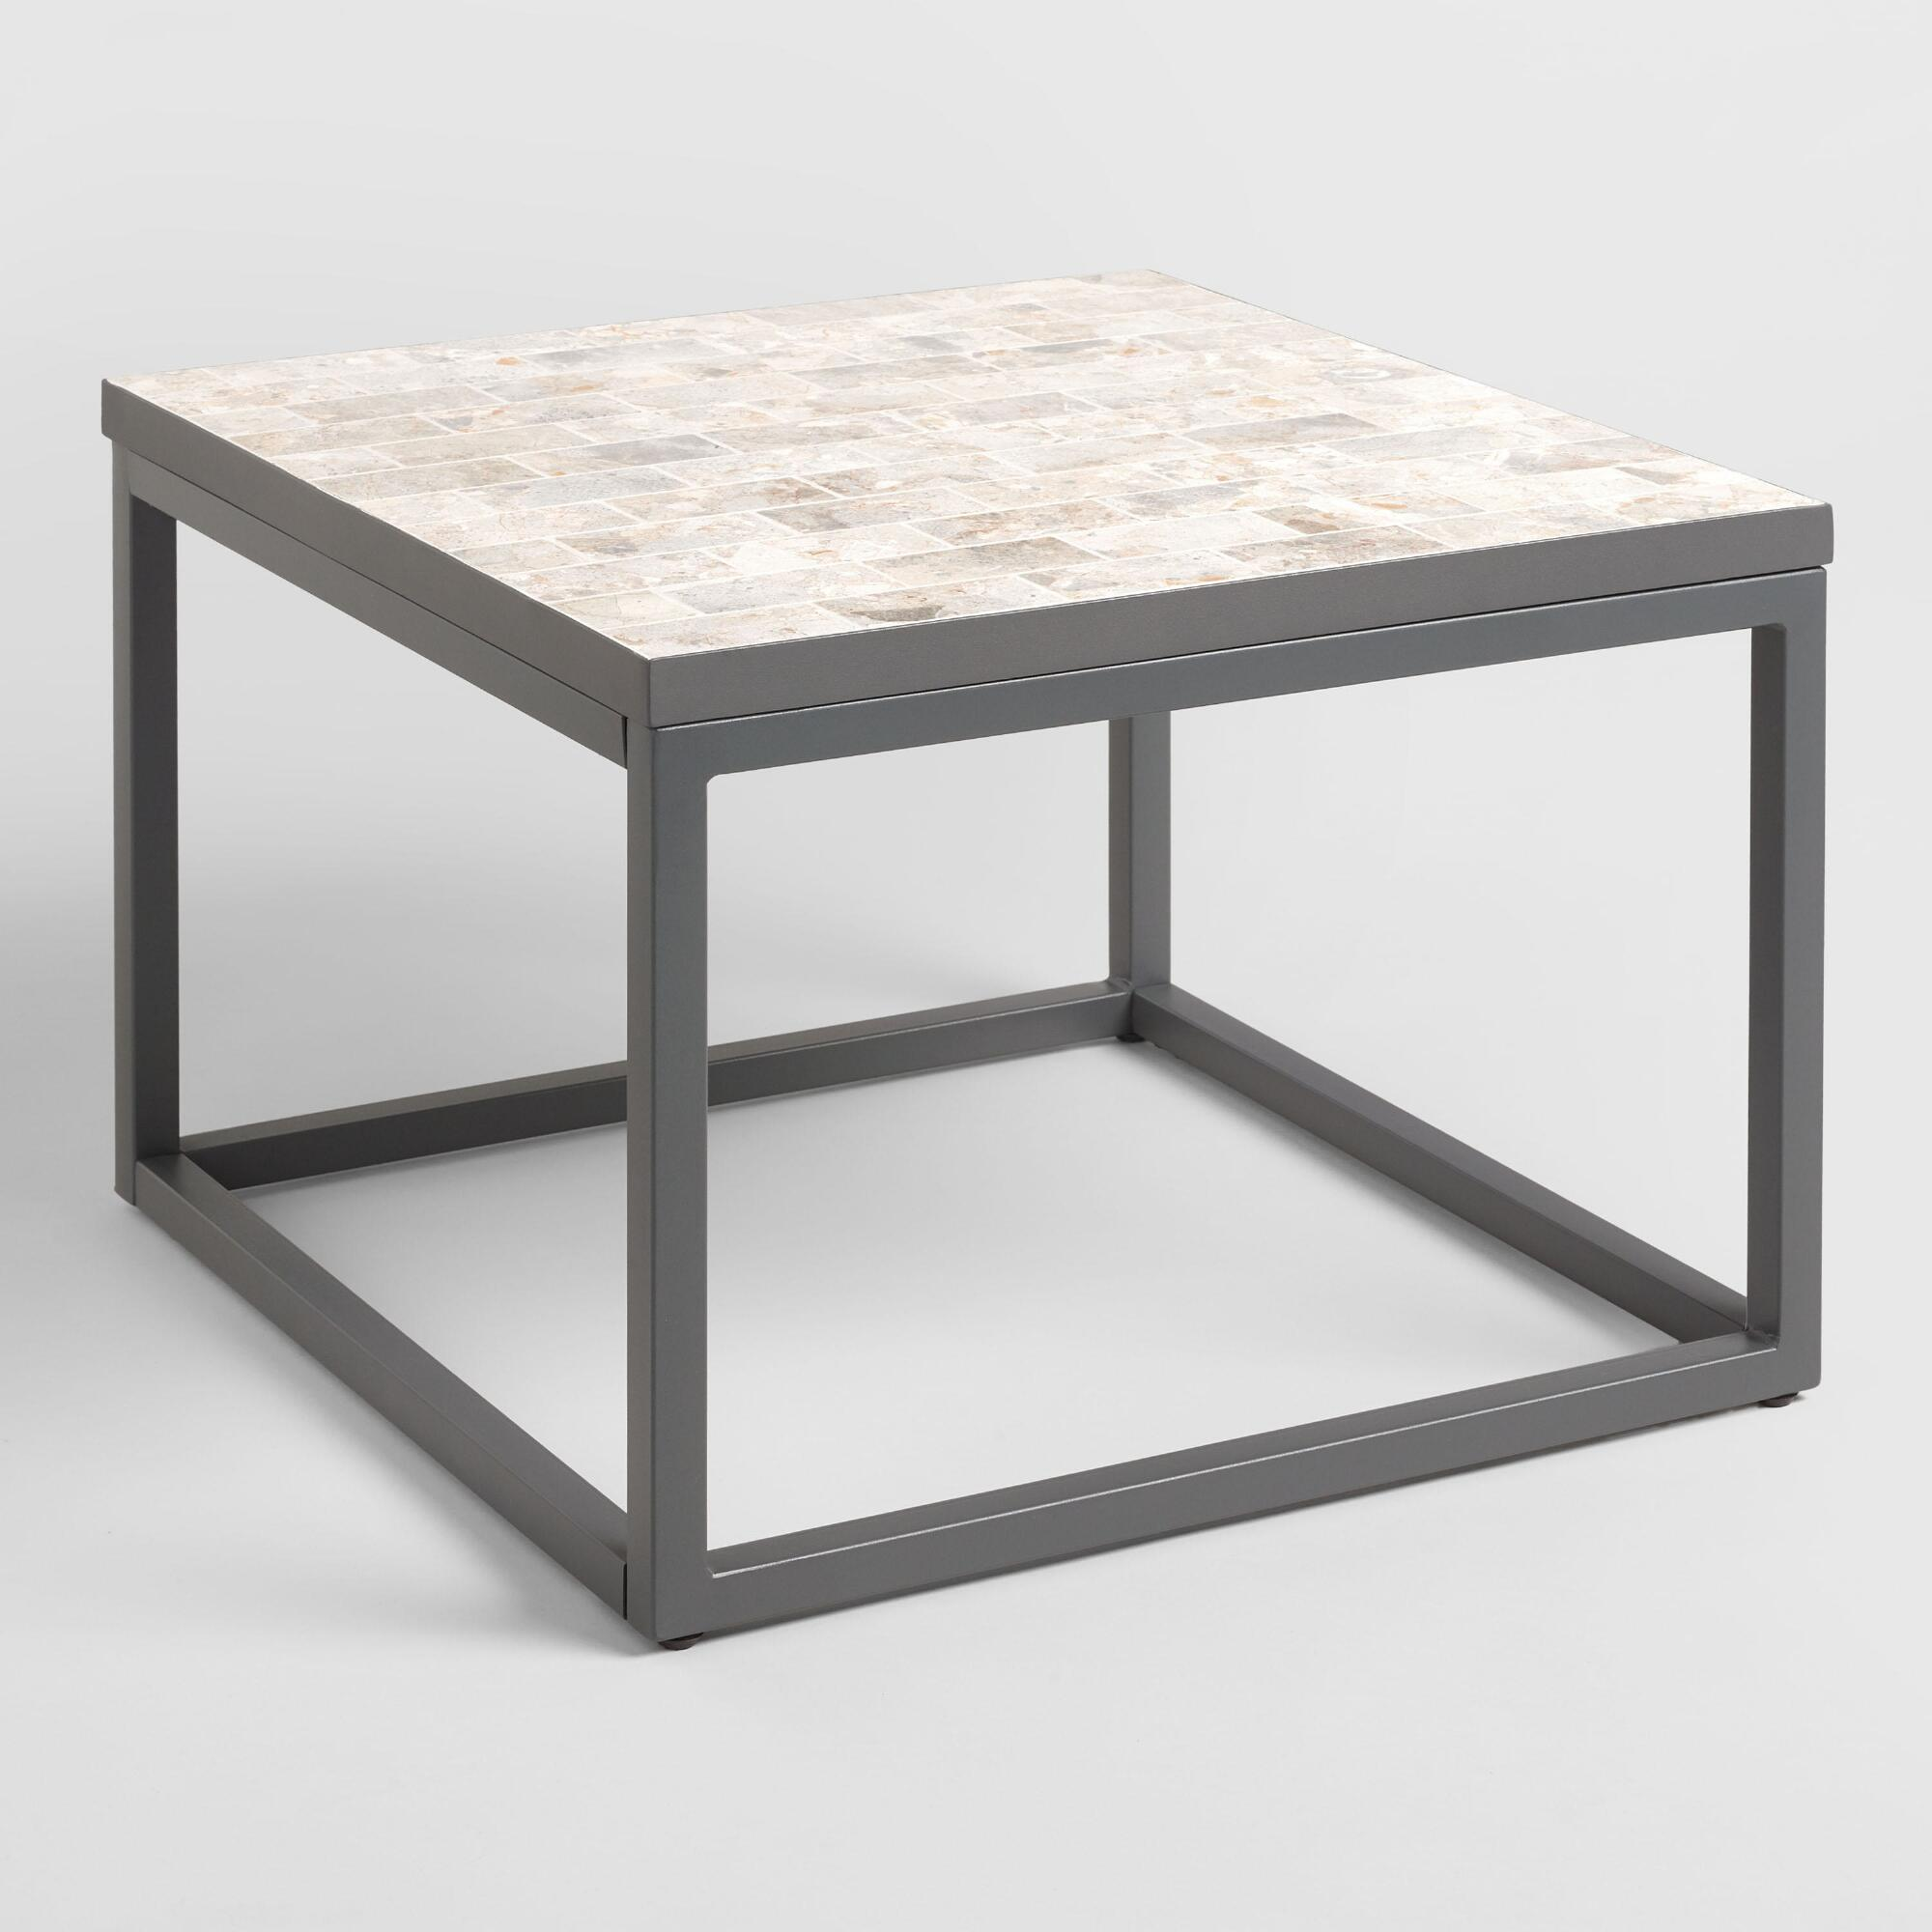 Square Marble Top Aveiro Outdoor Patio Occasional Coffee Table by World Market